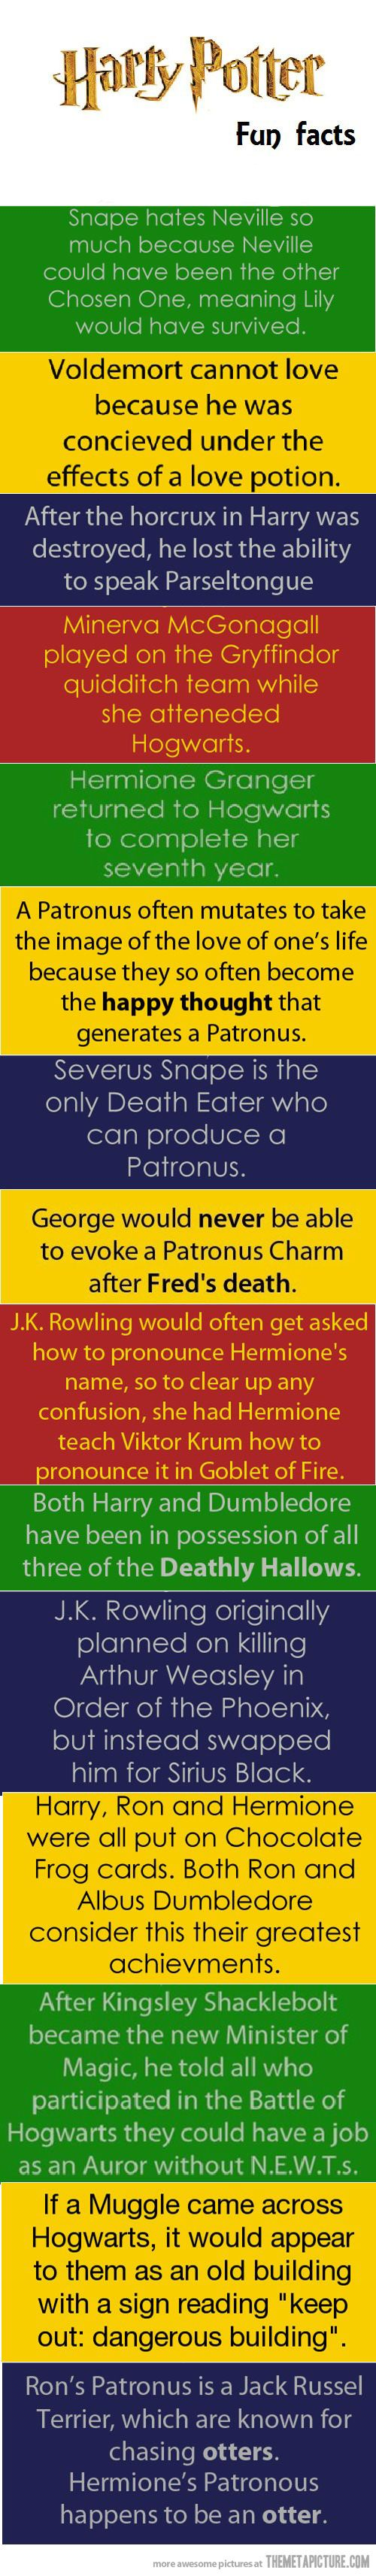 Harry Potter fun facts :)